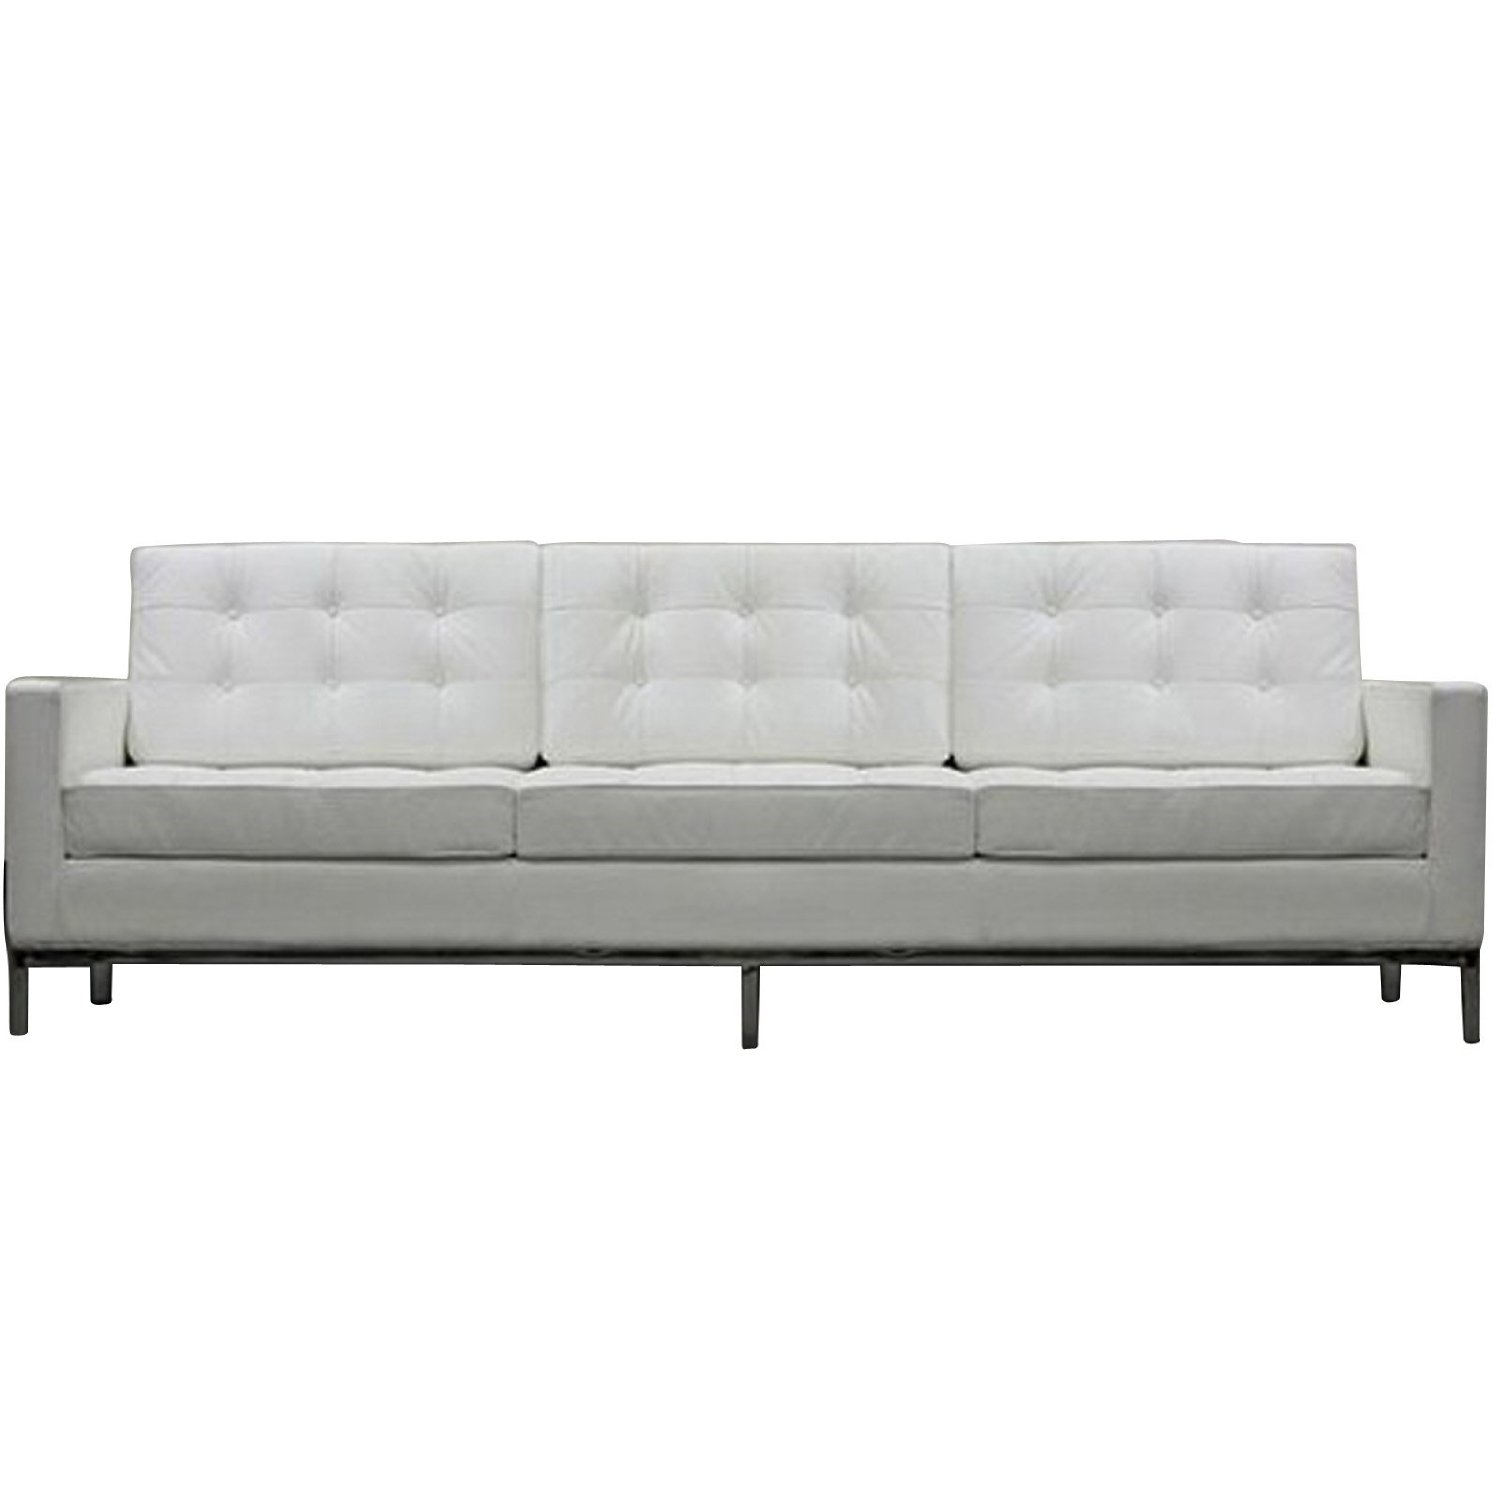 Image of: interior furniture tufted leather sofa